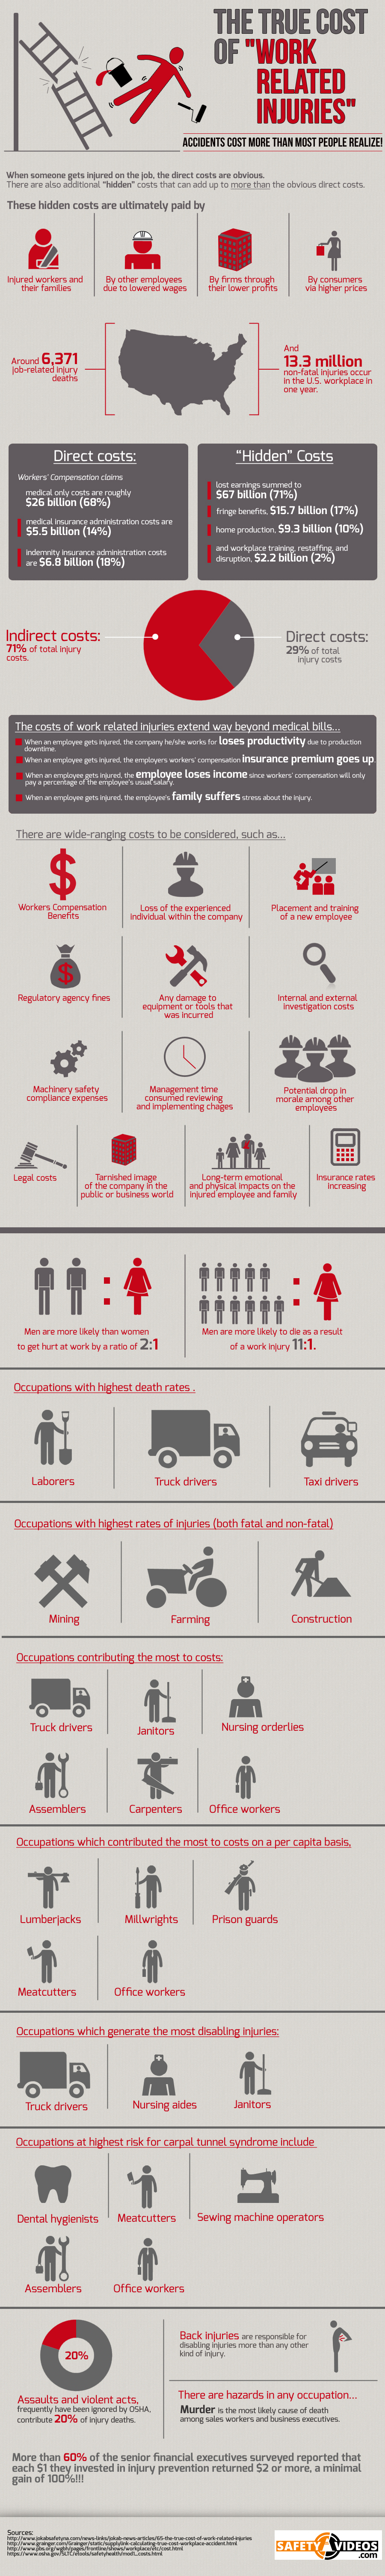 The True Cost Of A Work Related Injury (Infographic)